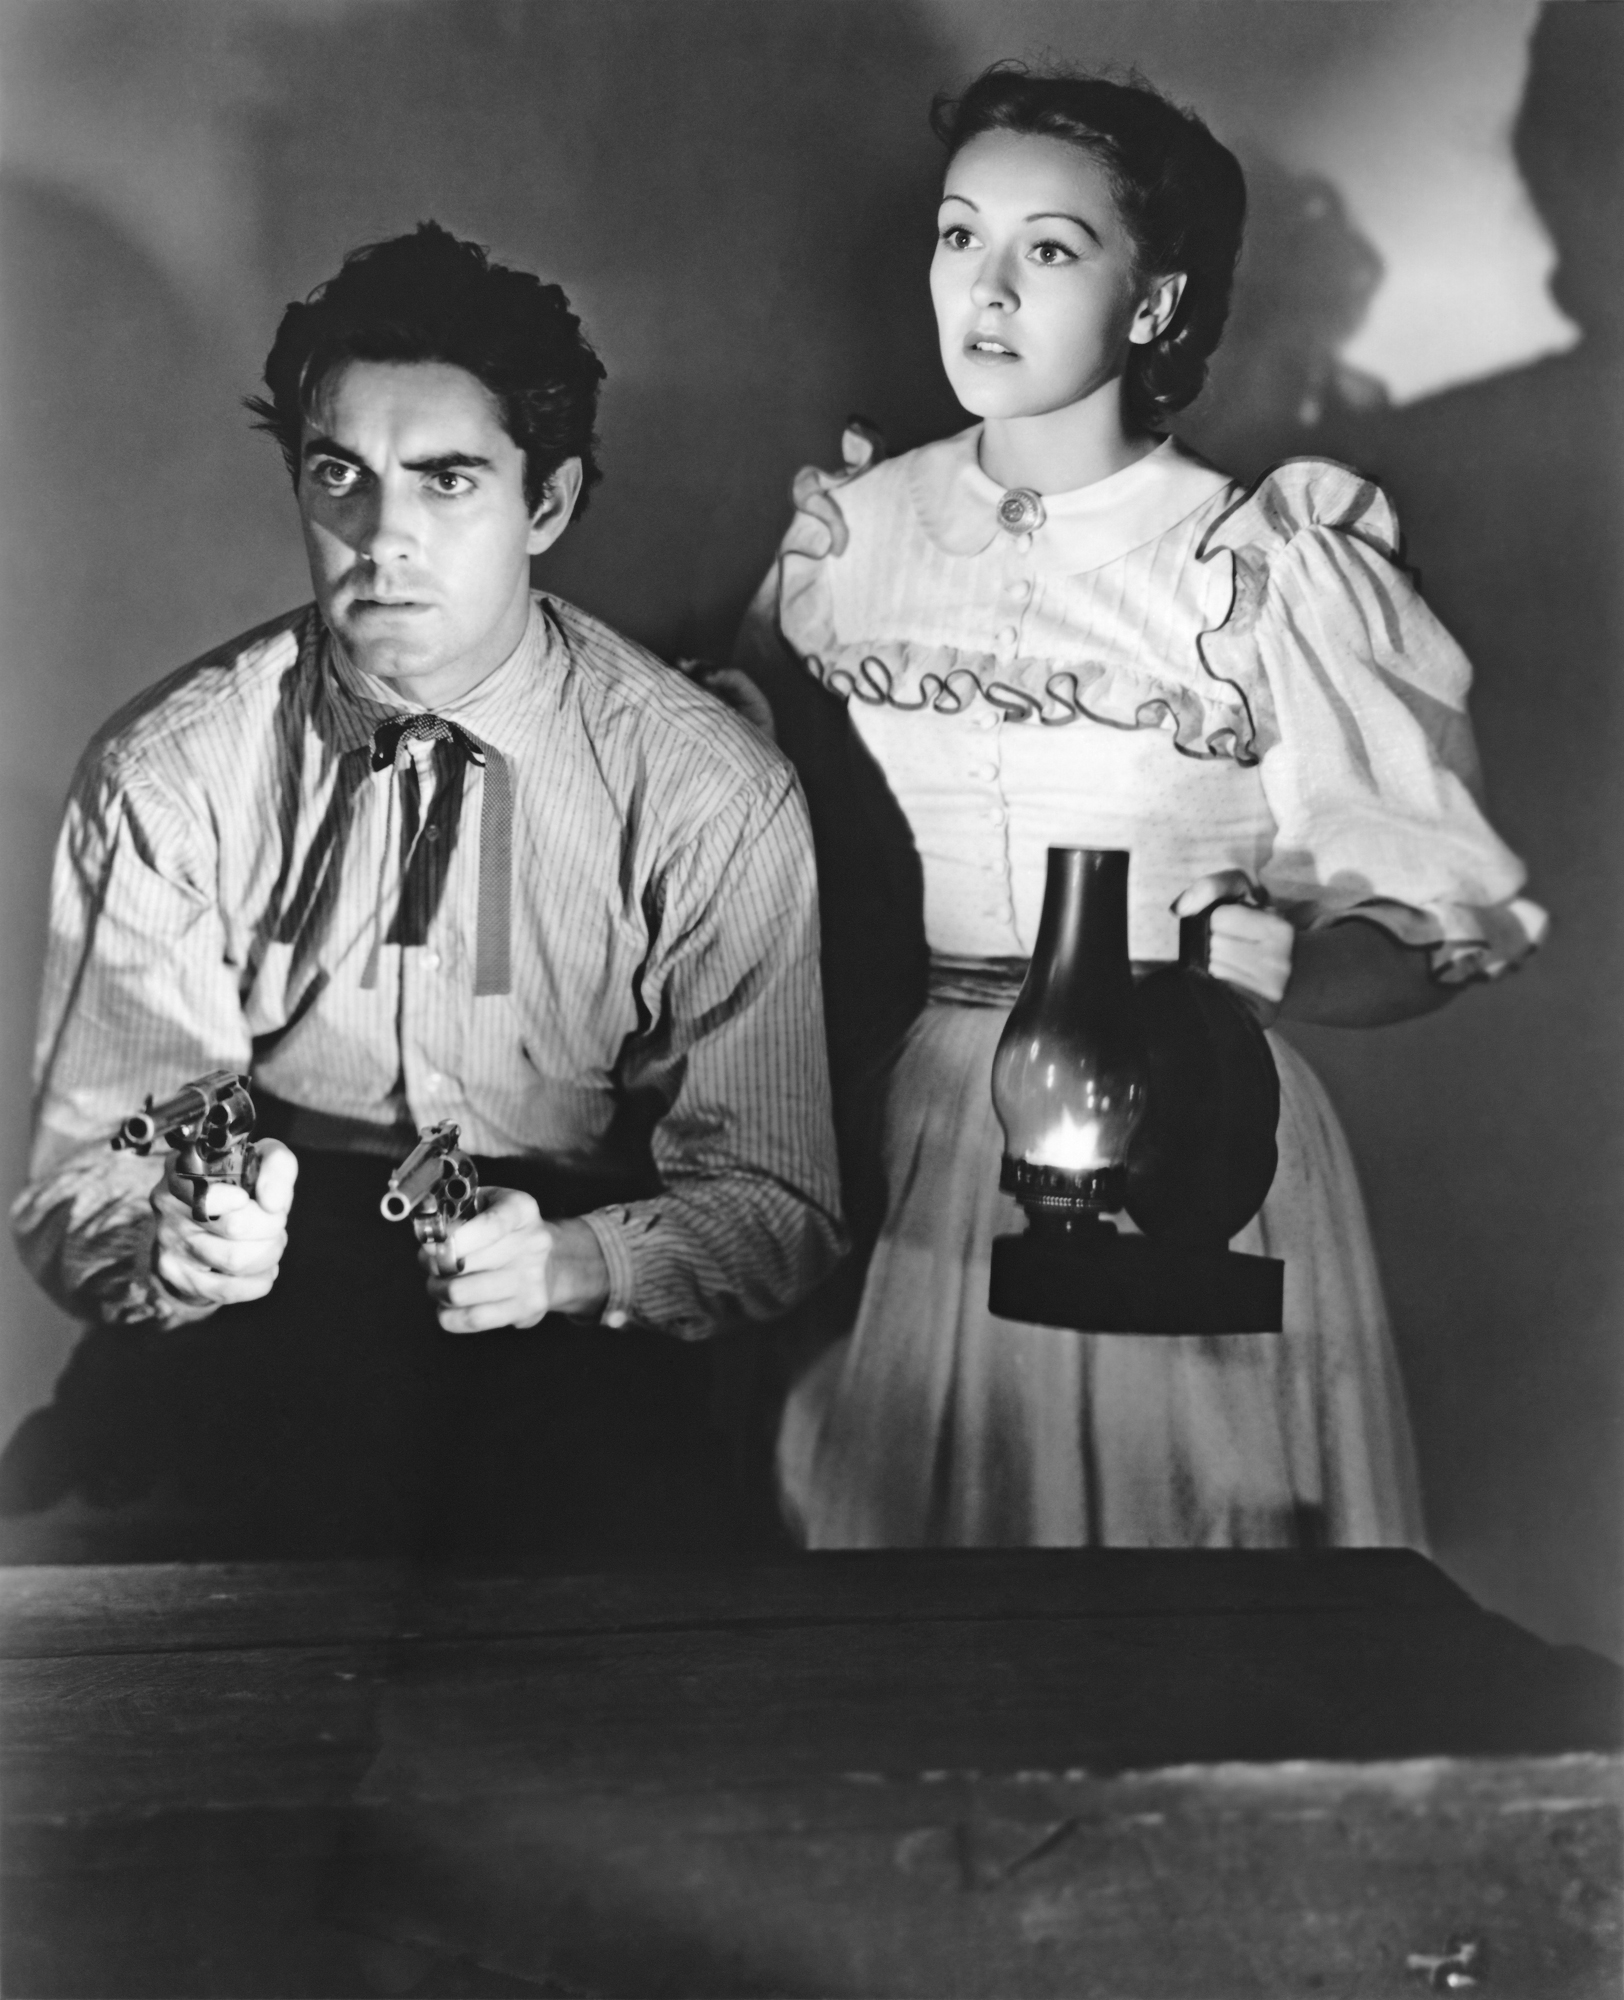 Nancy Kelly in Jesse James with With Tyrone Power, Jr., (Courtesy of Sarah and Michelle)